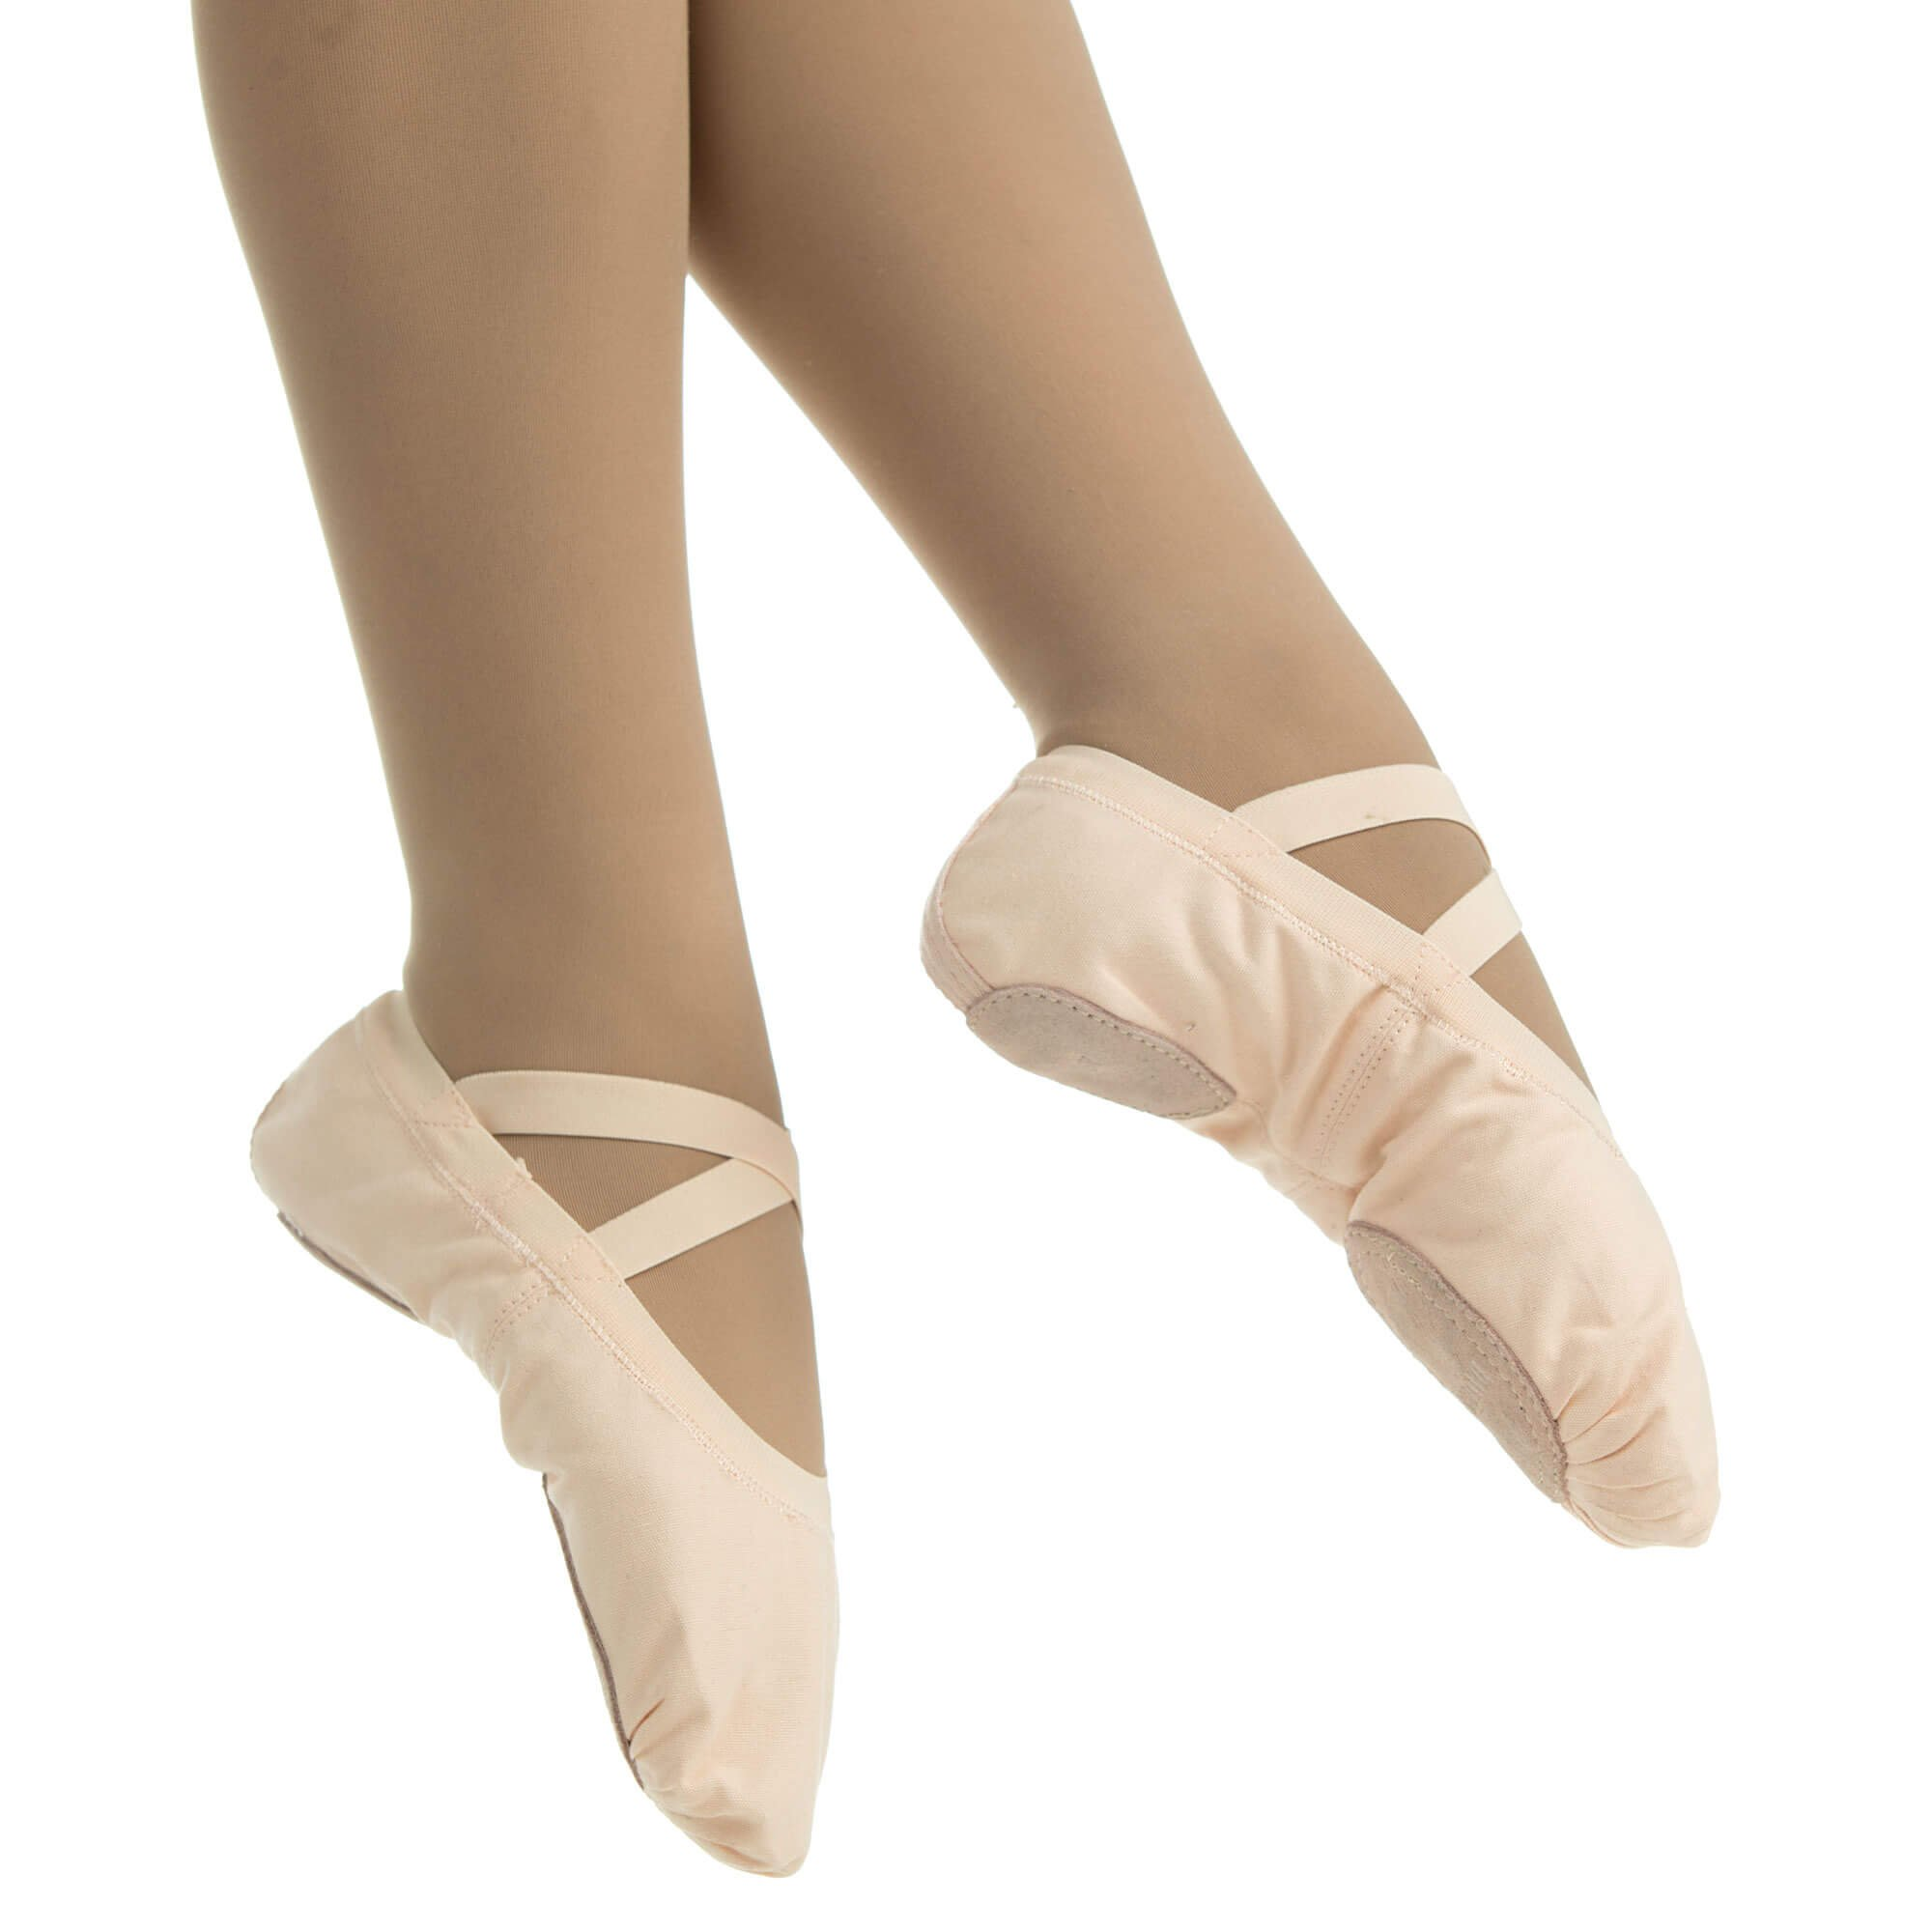 Danzcue Child Canvas Pro Elastic Split Sole Ballet Slipper